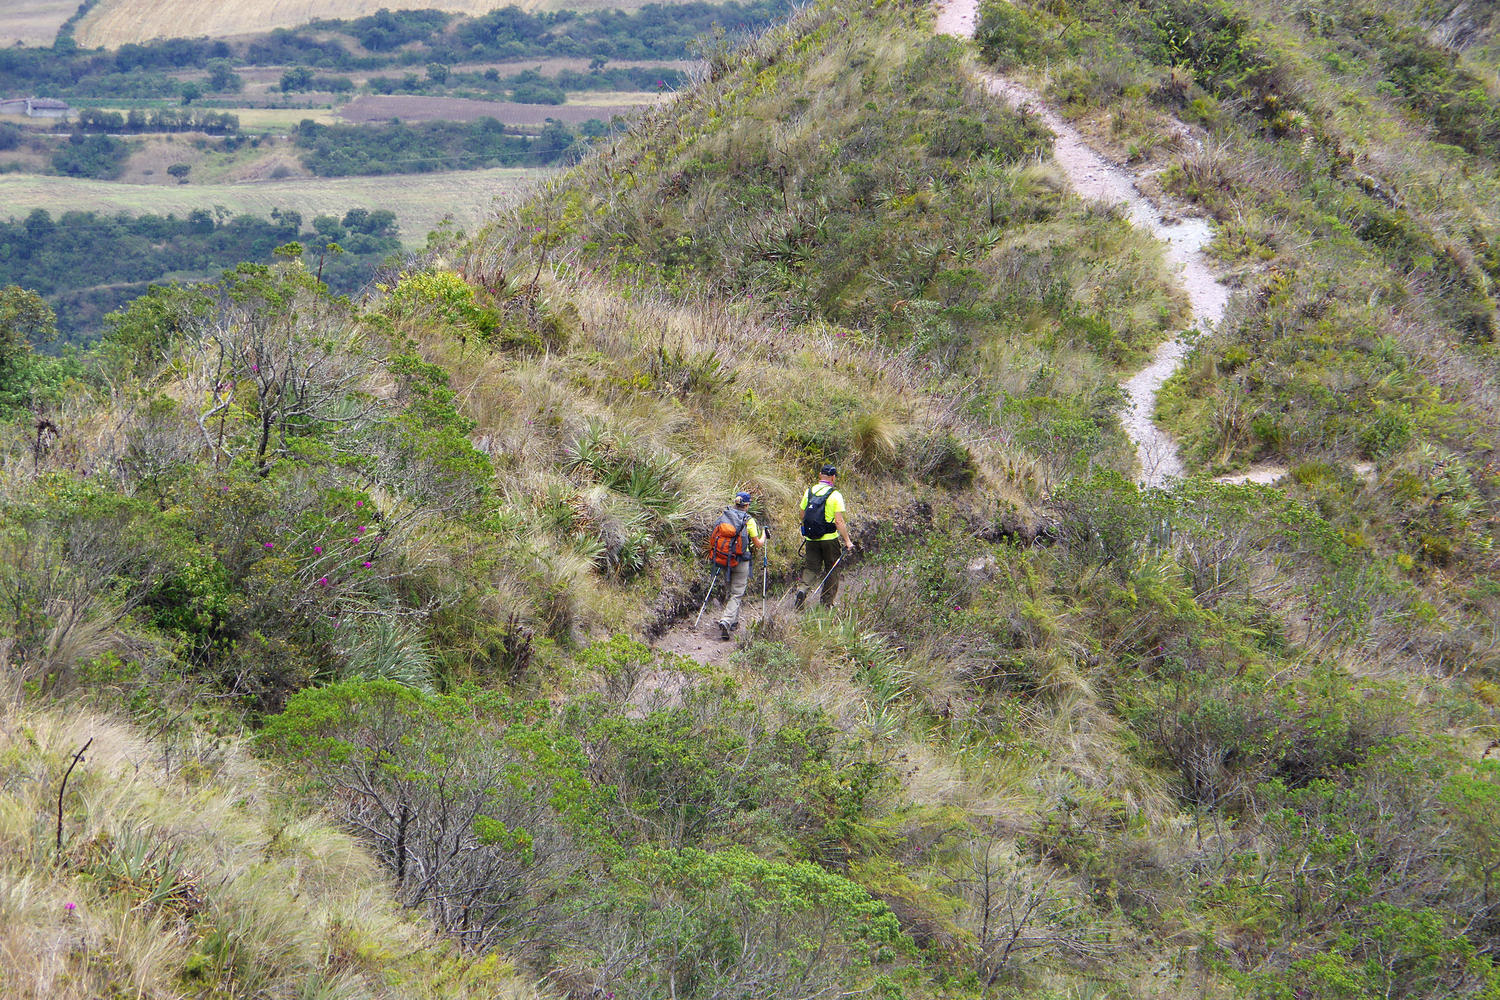 Walkers following the trail around the rim of Laguna de Cuicocha